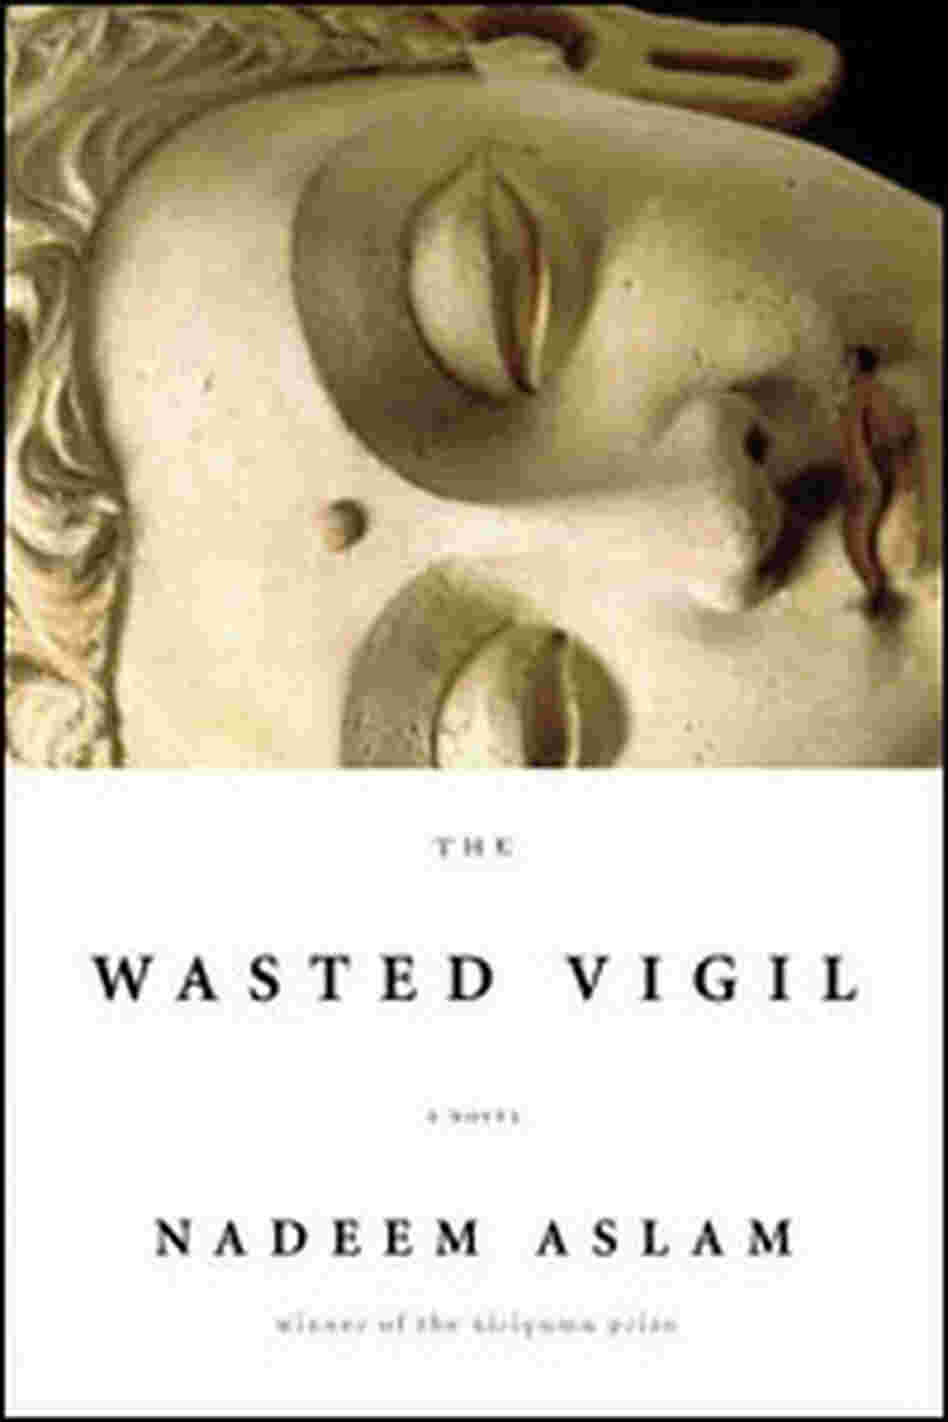 'The Wasted Vigil'